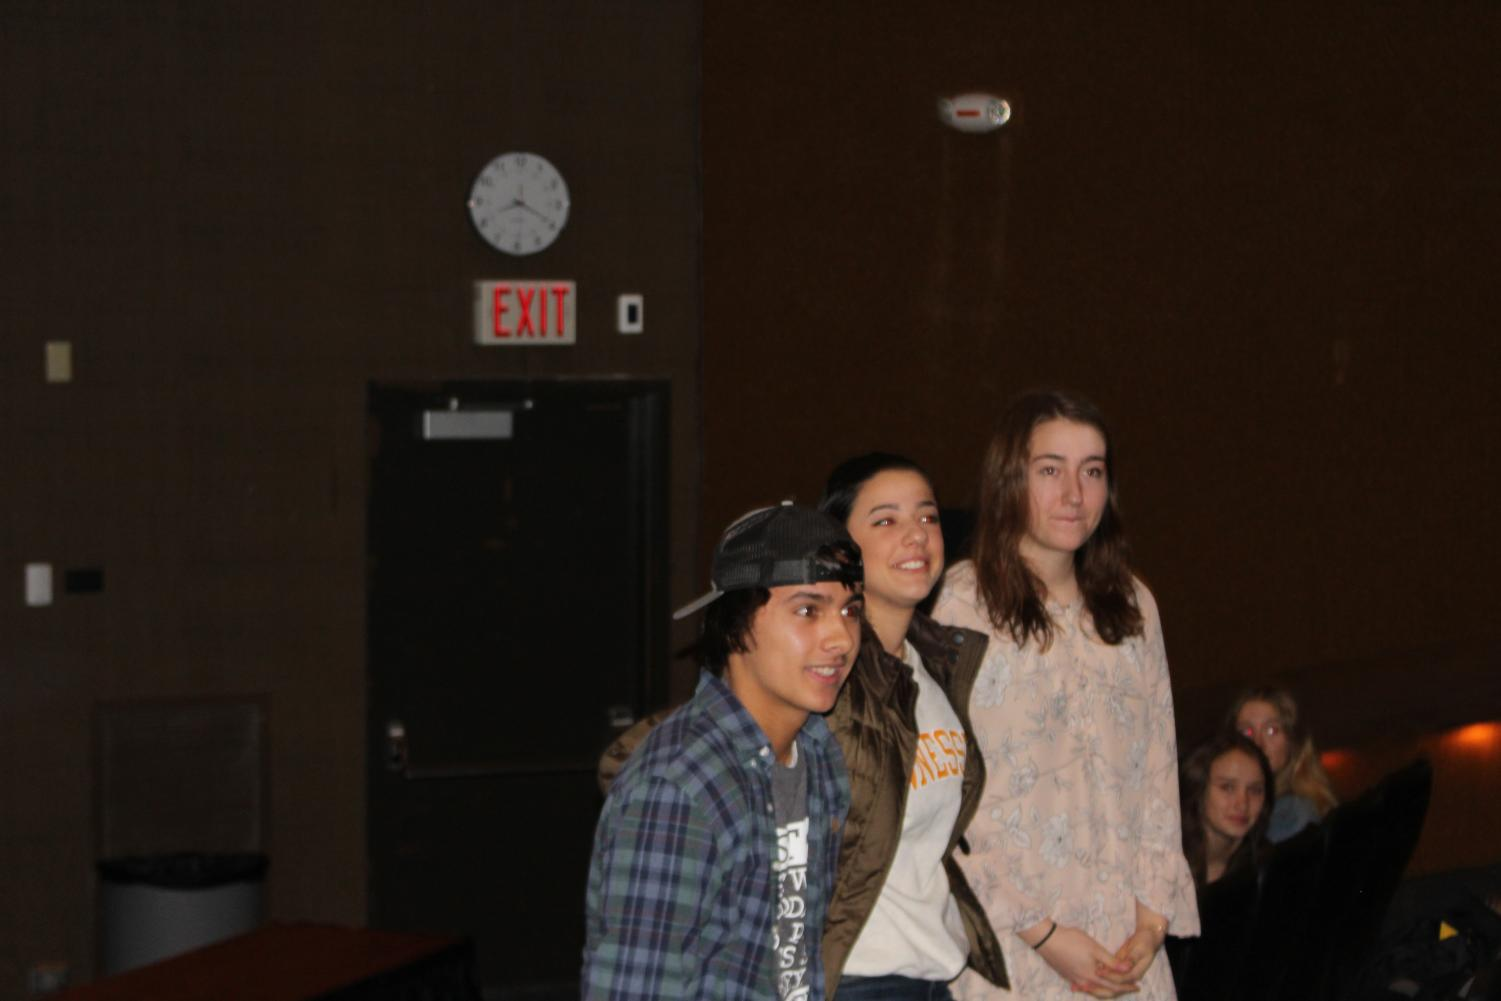 Seniors Ben Lopez, Layan Abdo, Katie Hay (pictured left to right) answer questions from the audience.